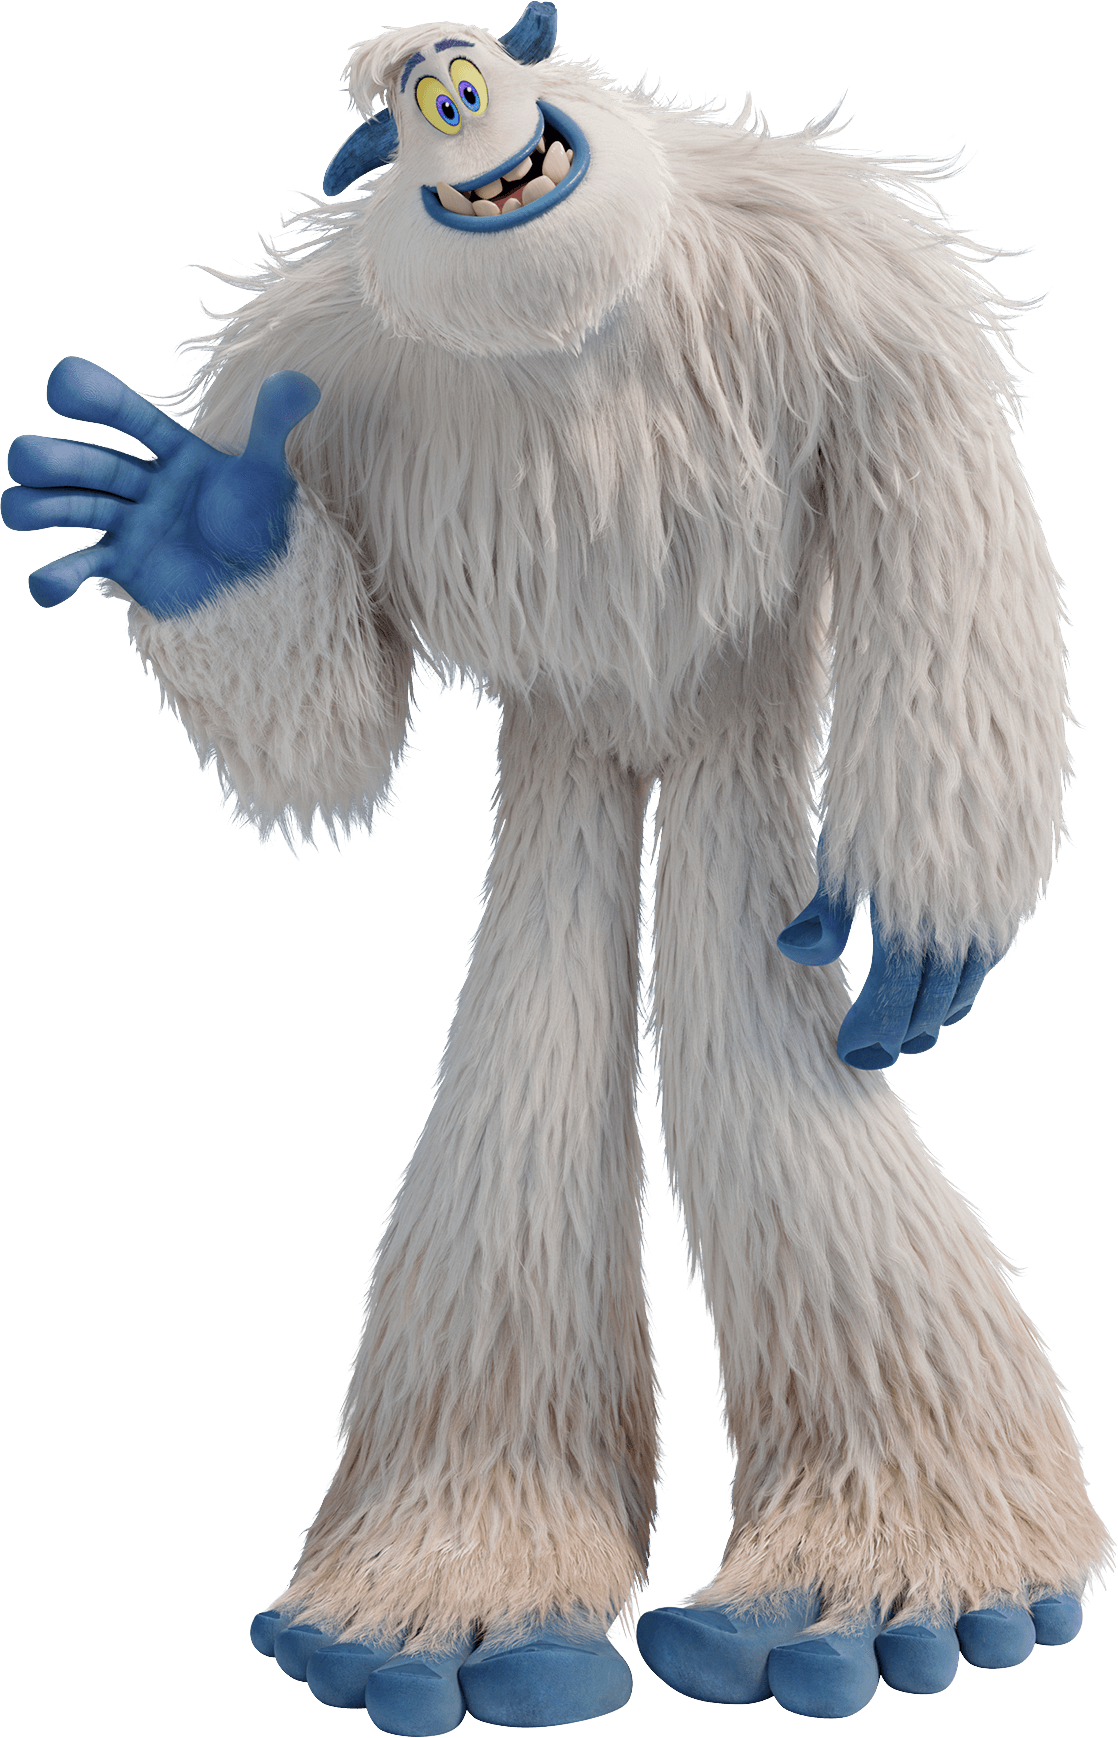 Smallfoot Migo Yeti Waving transparent PNG.